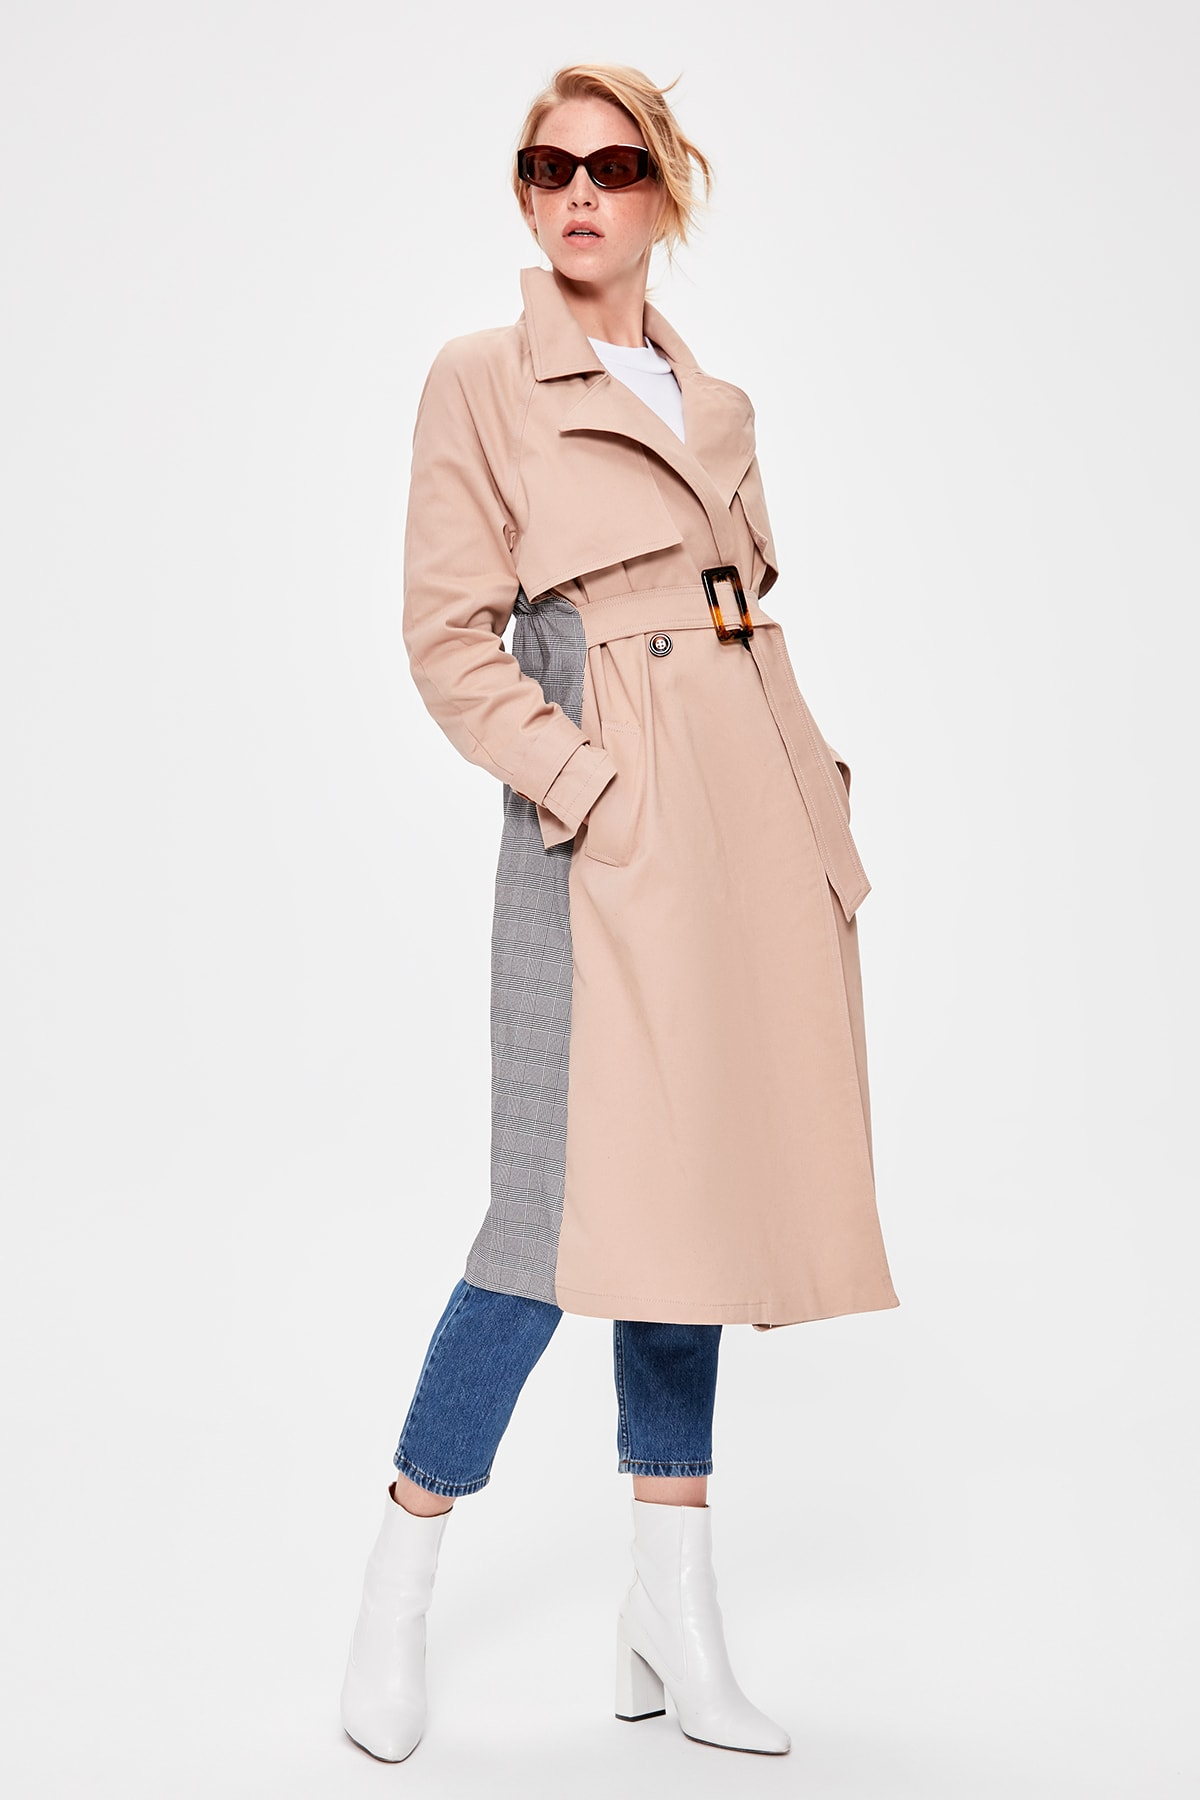 Trendyol Stone Arched Plaid Detailed Trench TWOAW20TR0013